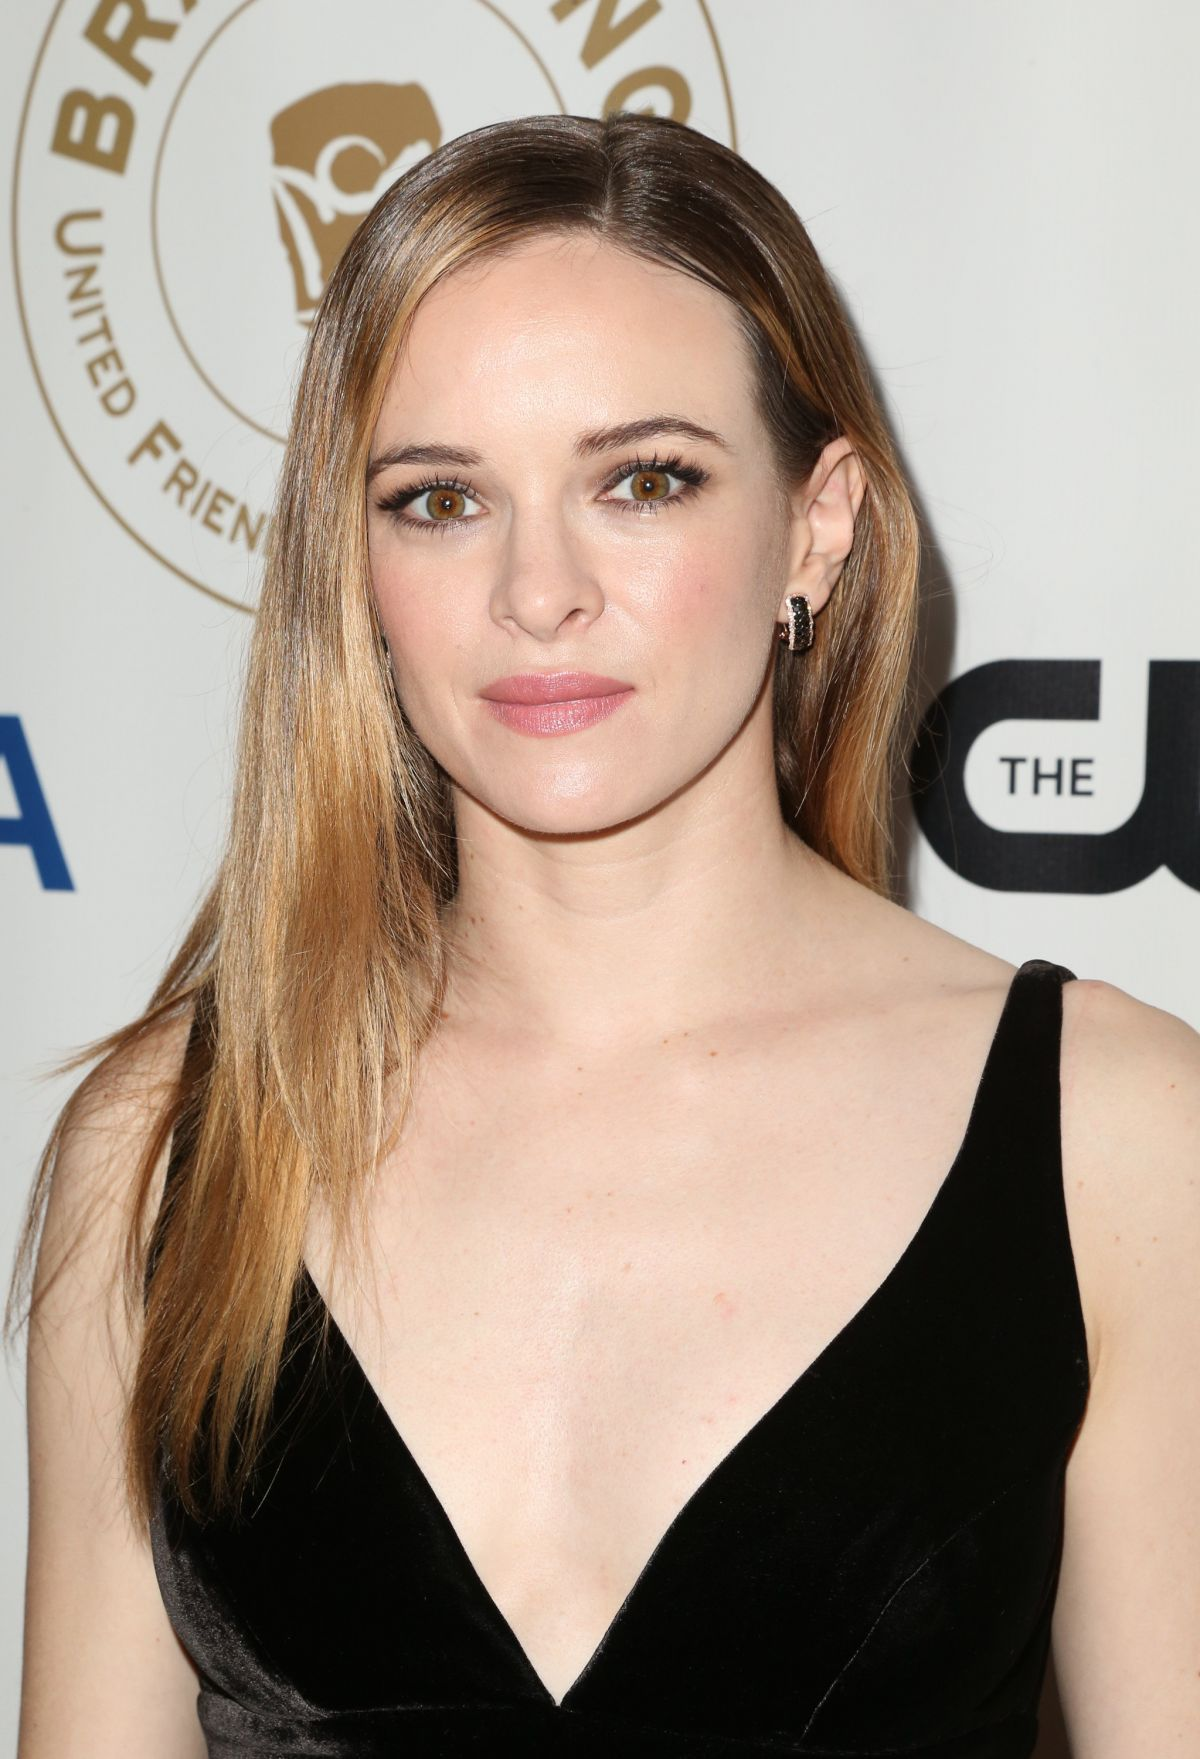 DANIELLE PANABAKER at United Friends of the Children Dinner in Los Angeles 06/08/2017